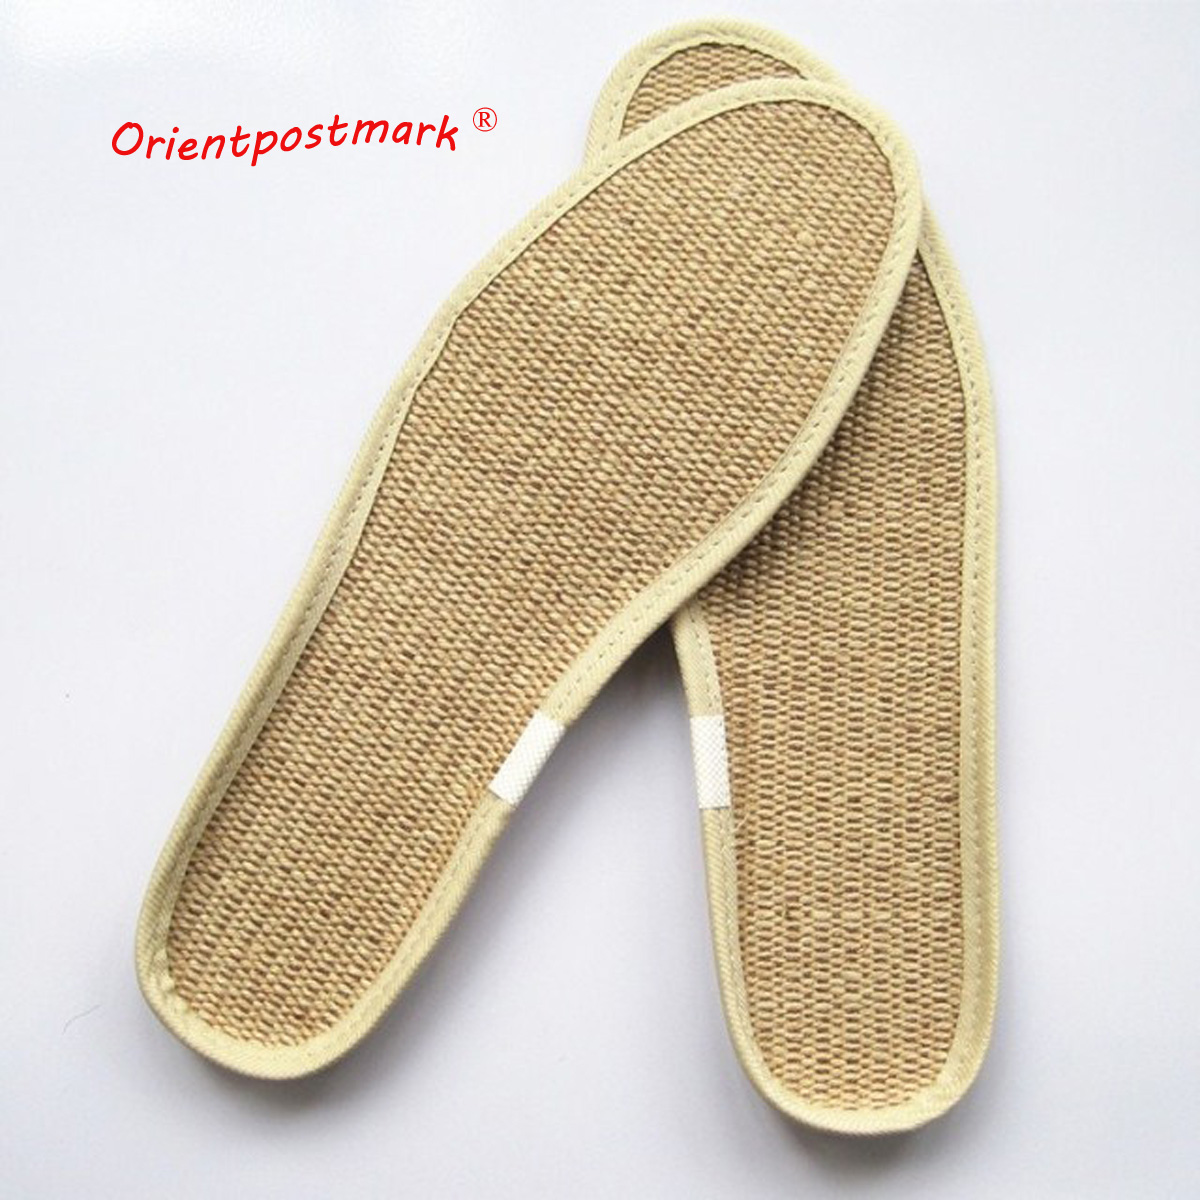 Jute EVA Insole Non-slip Linen Insole Durable Comfort Flax Absorbent  Breathable Unisex Sports Insoles Deodorant